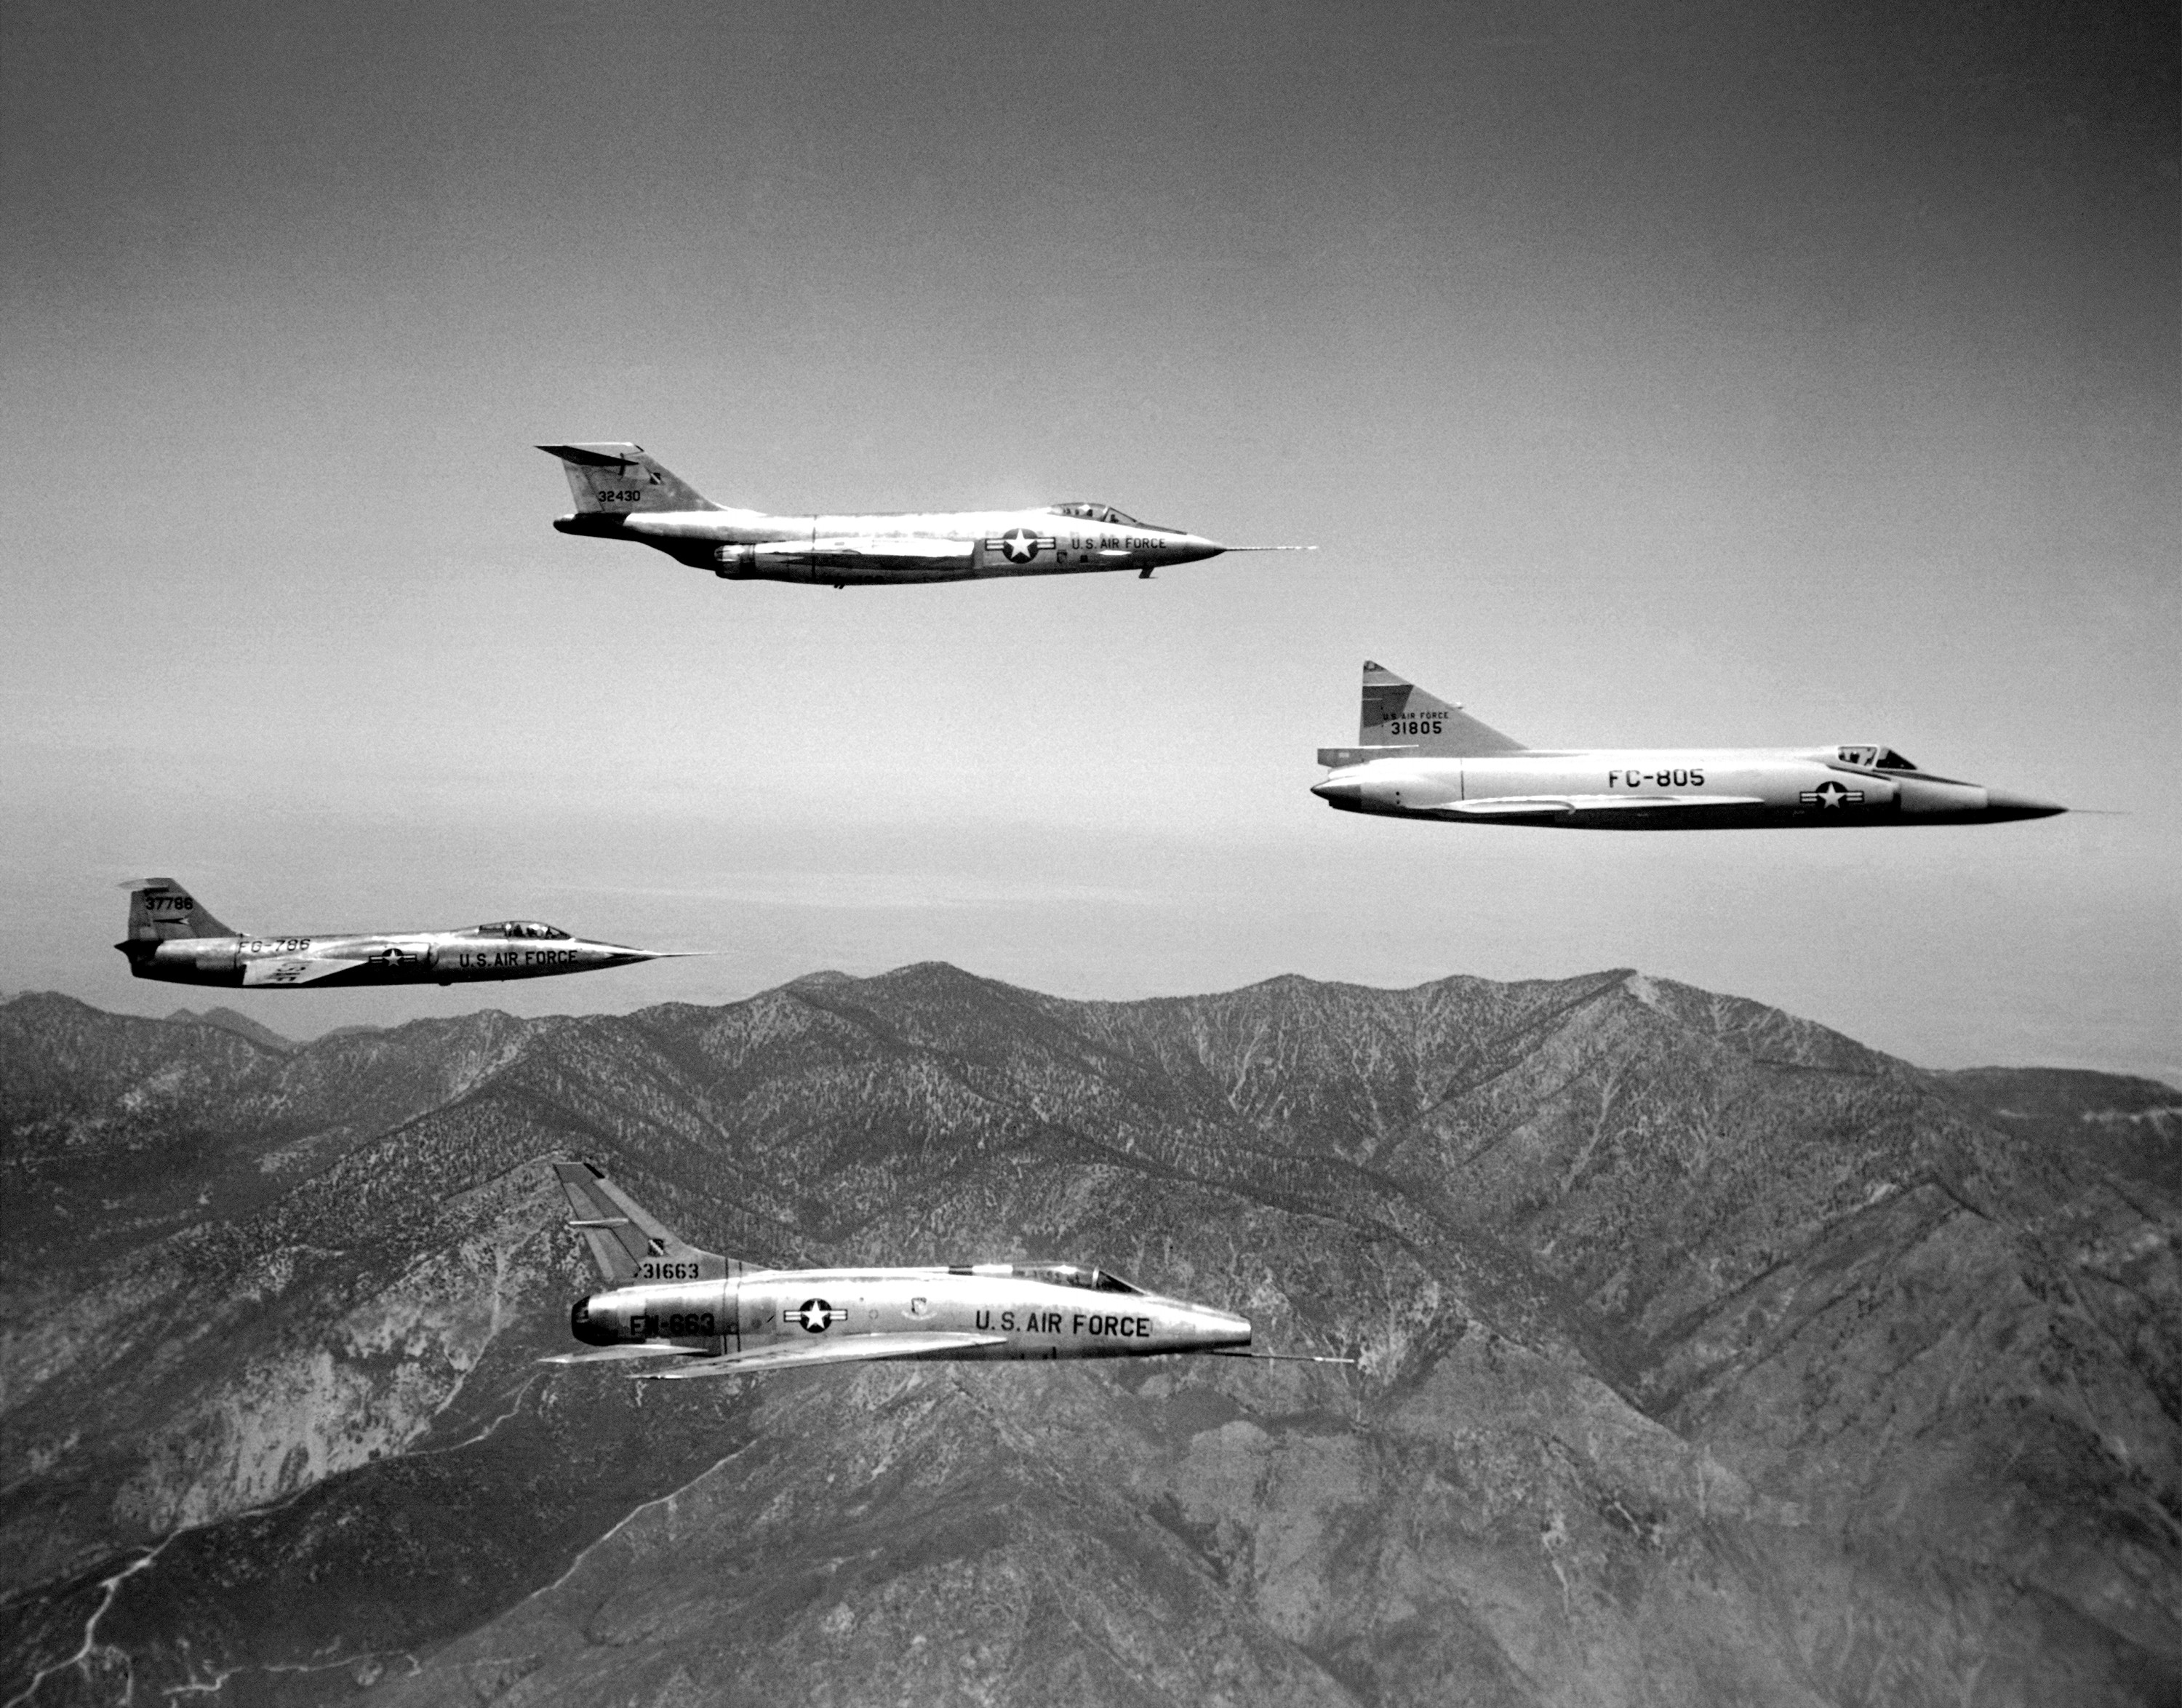 Four U.S. Air Force Century-series fighters in flight in 1957. These supersonic fighters were tested by the NACA Dryden Flight Research Center at Edwards Air Force Base, California (USA). The aircraft visible are: McDonnell F-101A-5-MC Voodoo (s/n 53-2430, top), Lockheed XF-104A Starfighter (53-7786, left). This aircraft crashed on 11 July 1957 due to an uncontrollable tail flutter. The pilot, Bill Park, ejected safely, Convair F-102A-20-CO Delta Dagger (53-1805, right), North American F-100A-20-NA Super Sabre (53-1663, bottom). ( Image by NACA Dryden Flight Research Center via wikipedia)